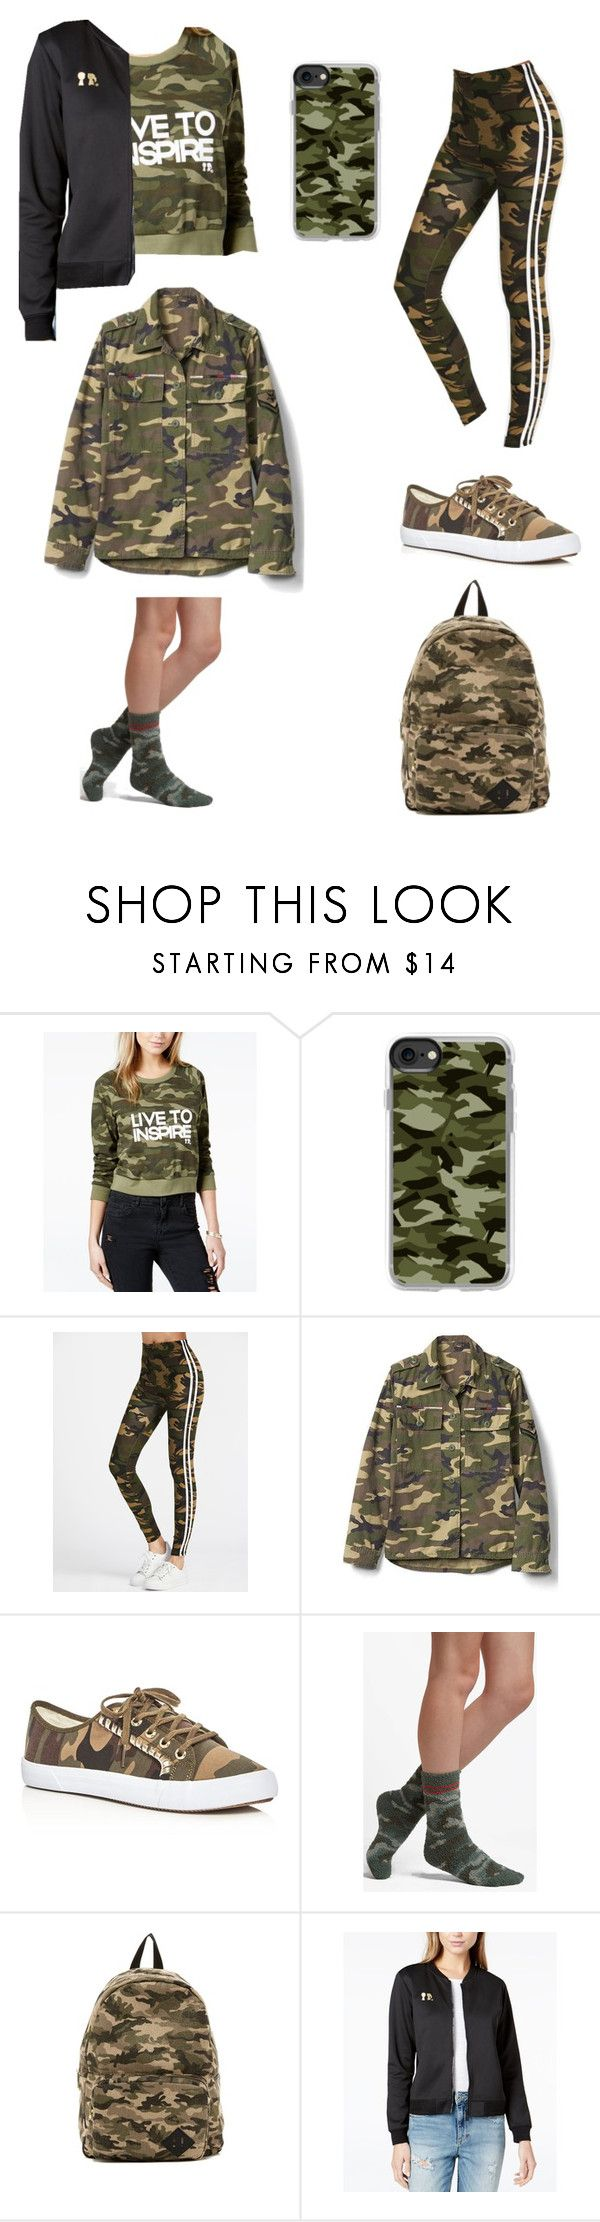 """""""Boy Meets Girl: Izzy Parker Set #4"""" by iep1-i ❤ liked on Polyvore featuring Boy Meets Girl, Casetify, Gap, Jack Rogers, P.J. Salvage, Madden Girl, Macys, boymeetsgirl, boymeetsgirlusa and boymeetsgirlinmacys"""